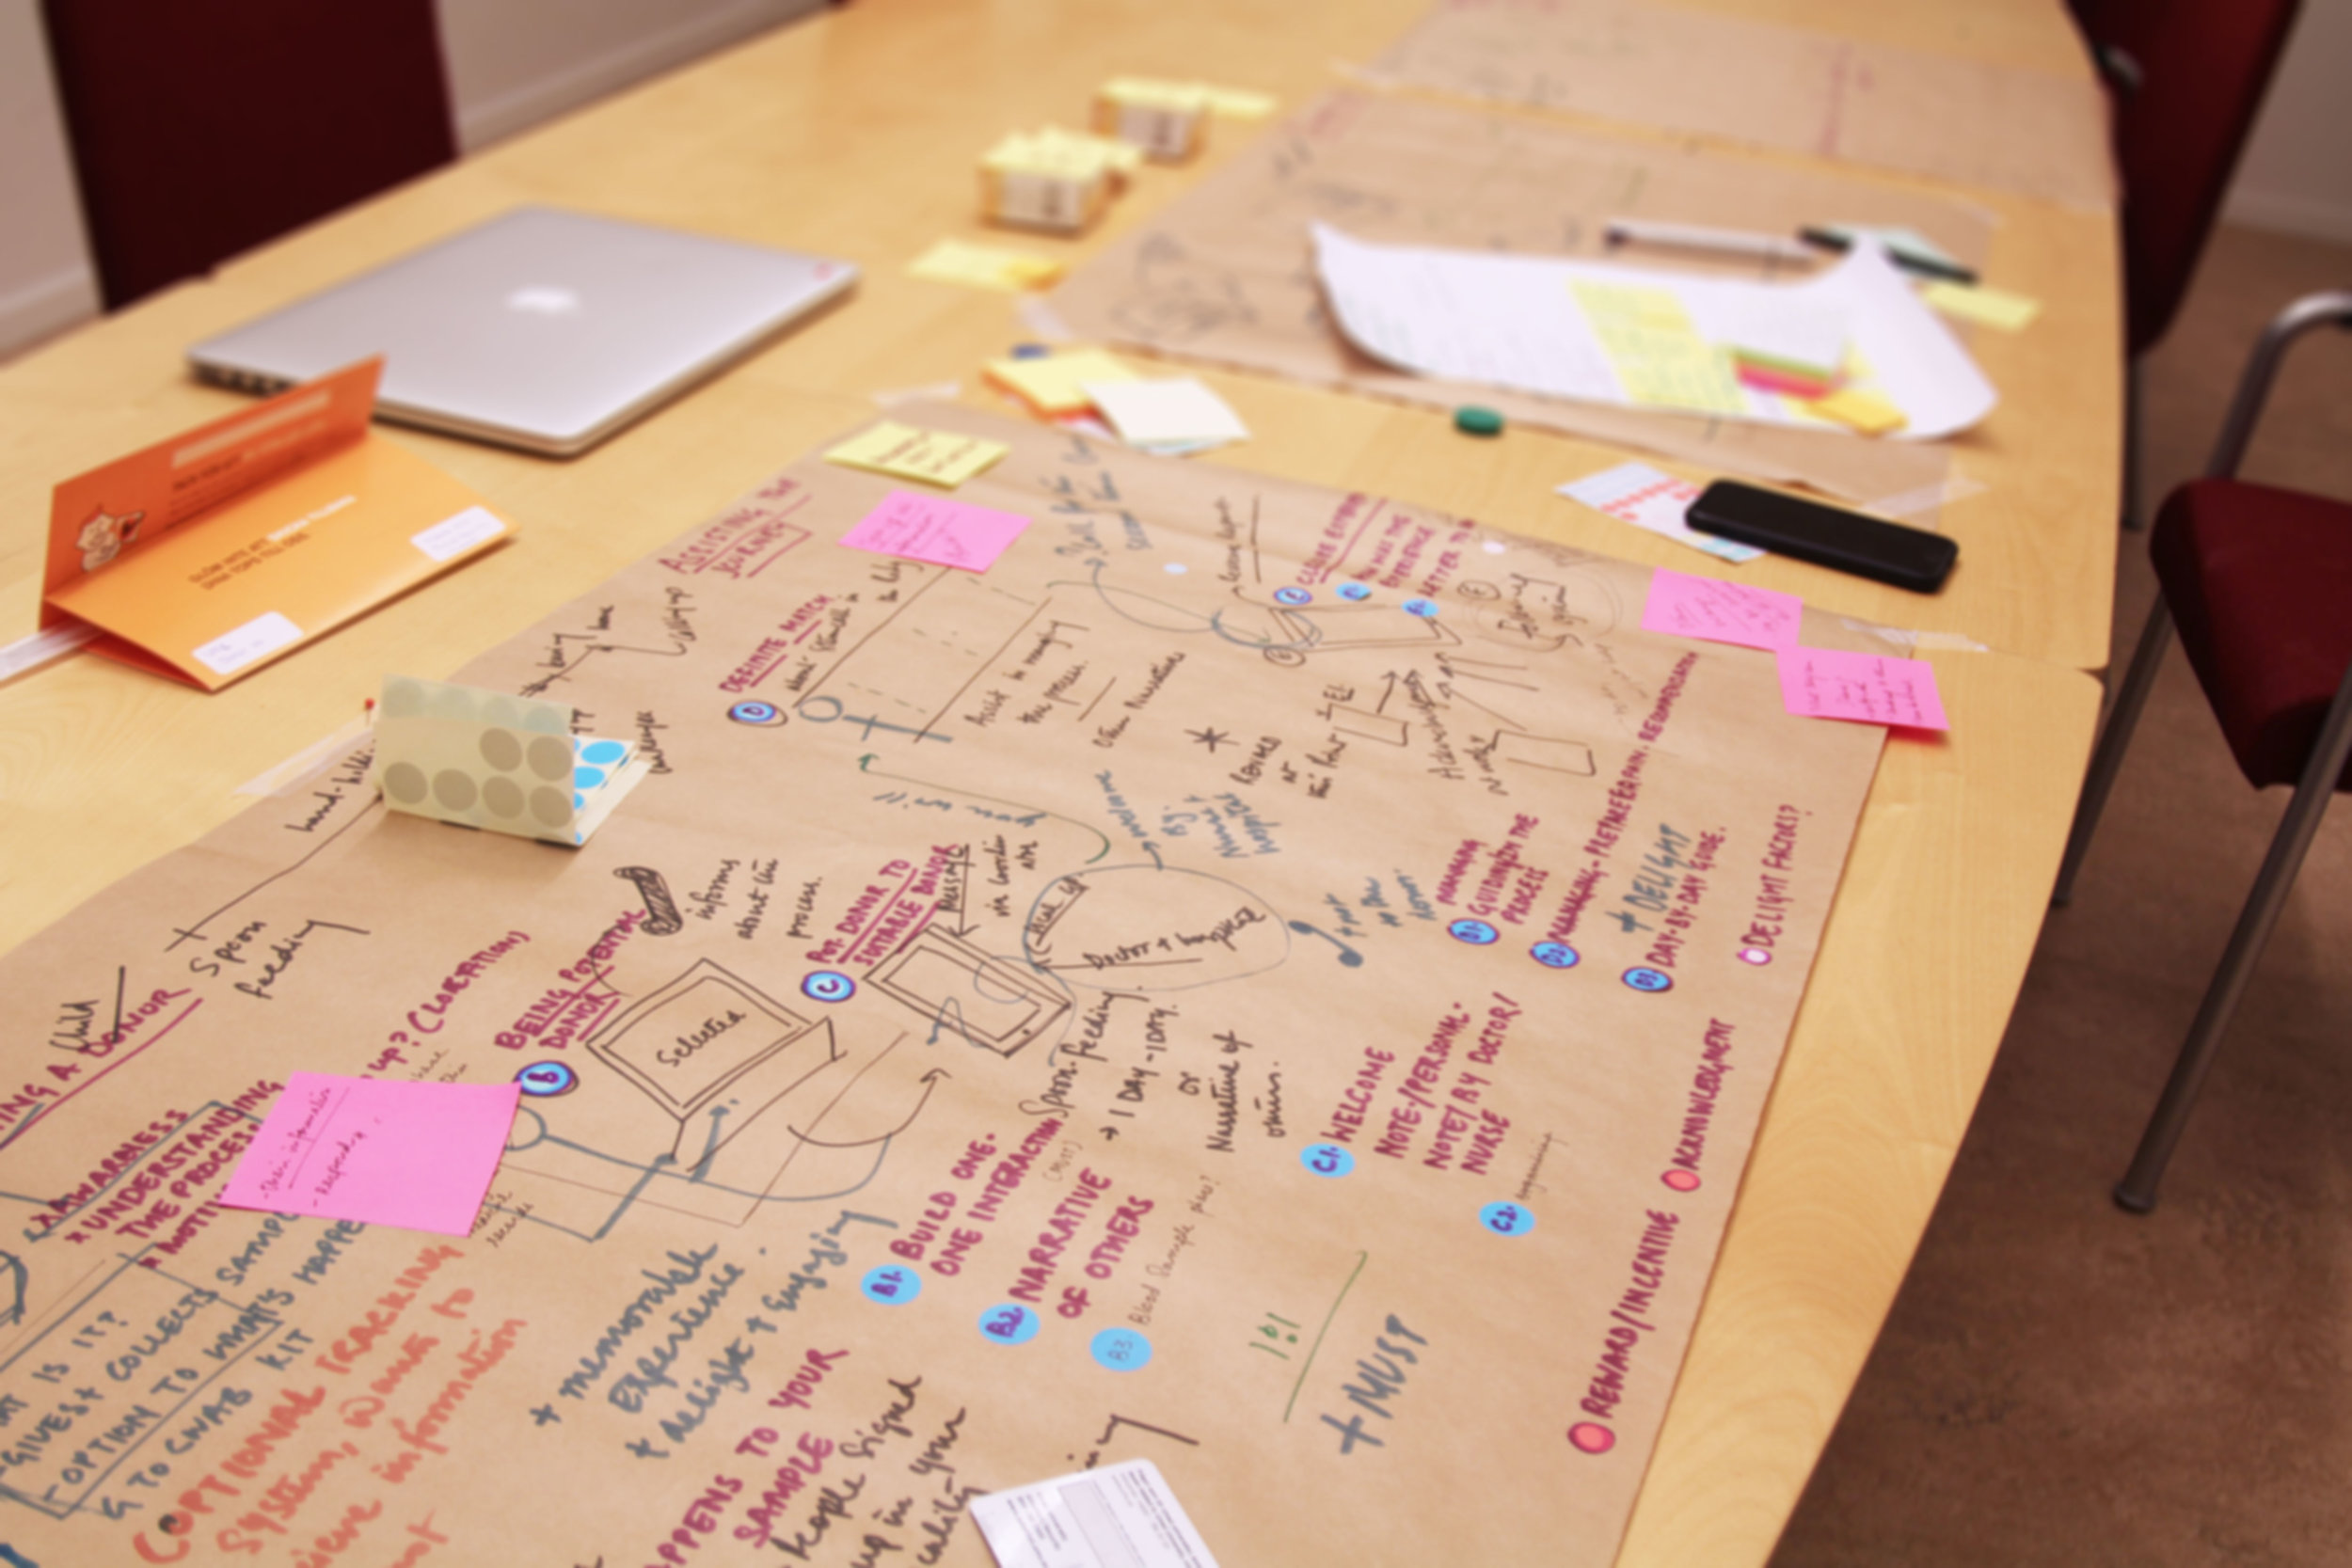 Idea generation - mapping ways to assist the donor at various stages of the donation